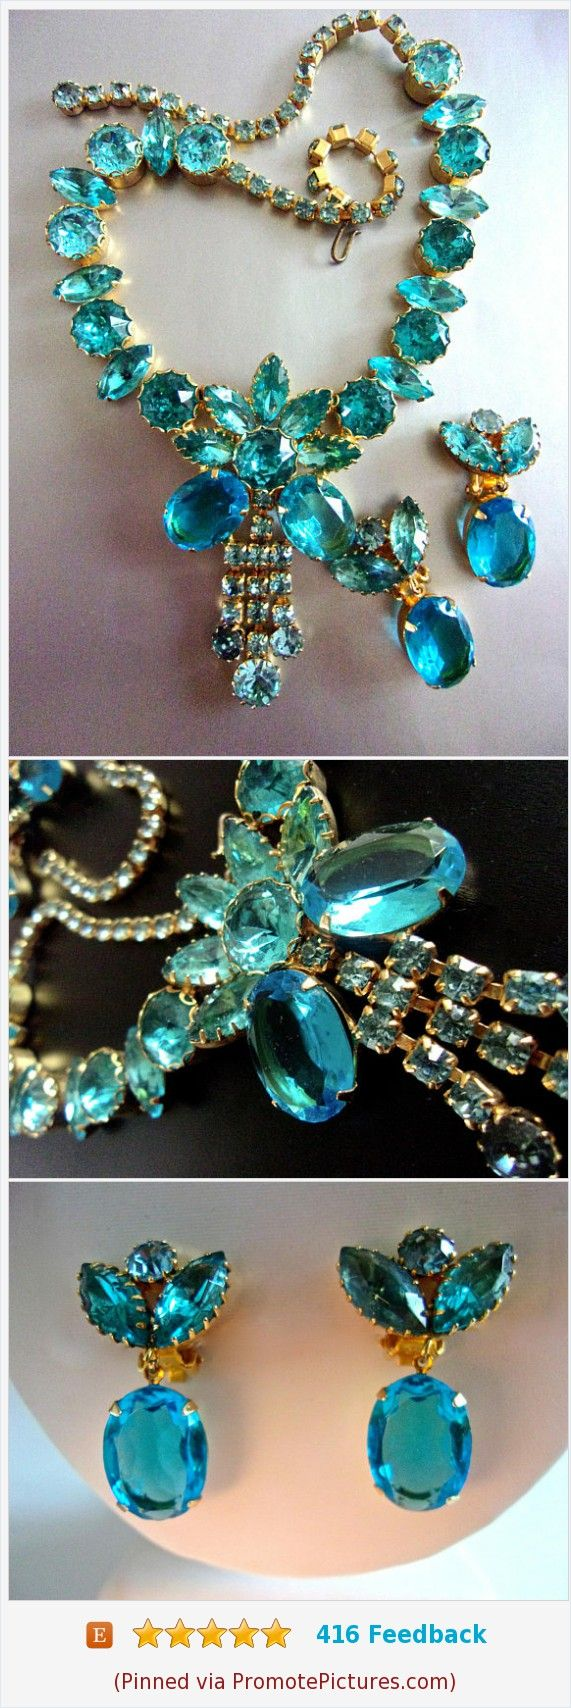 Aqua JULIANA D&E Rhinestone Necklace Earrings Set, Gold Plated, Vintage